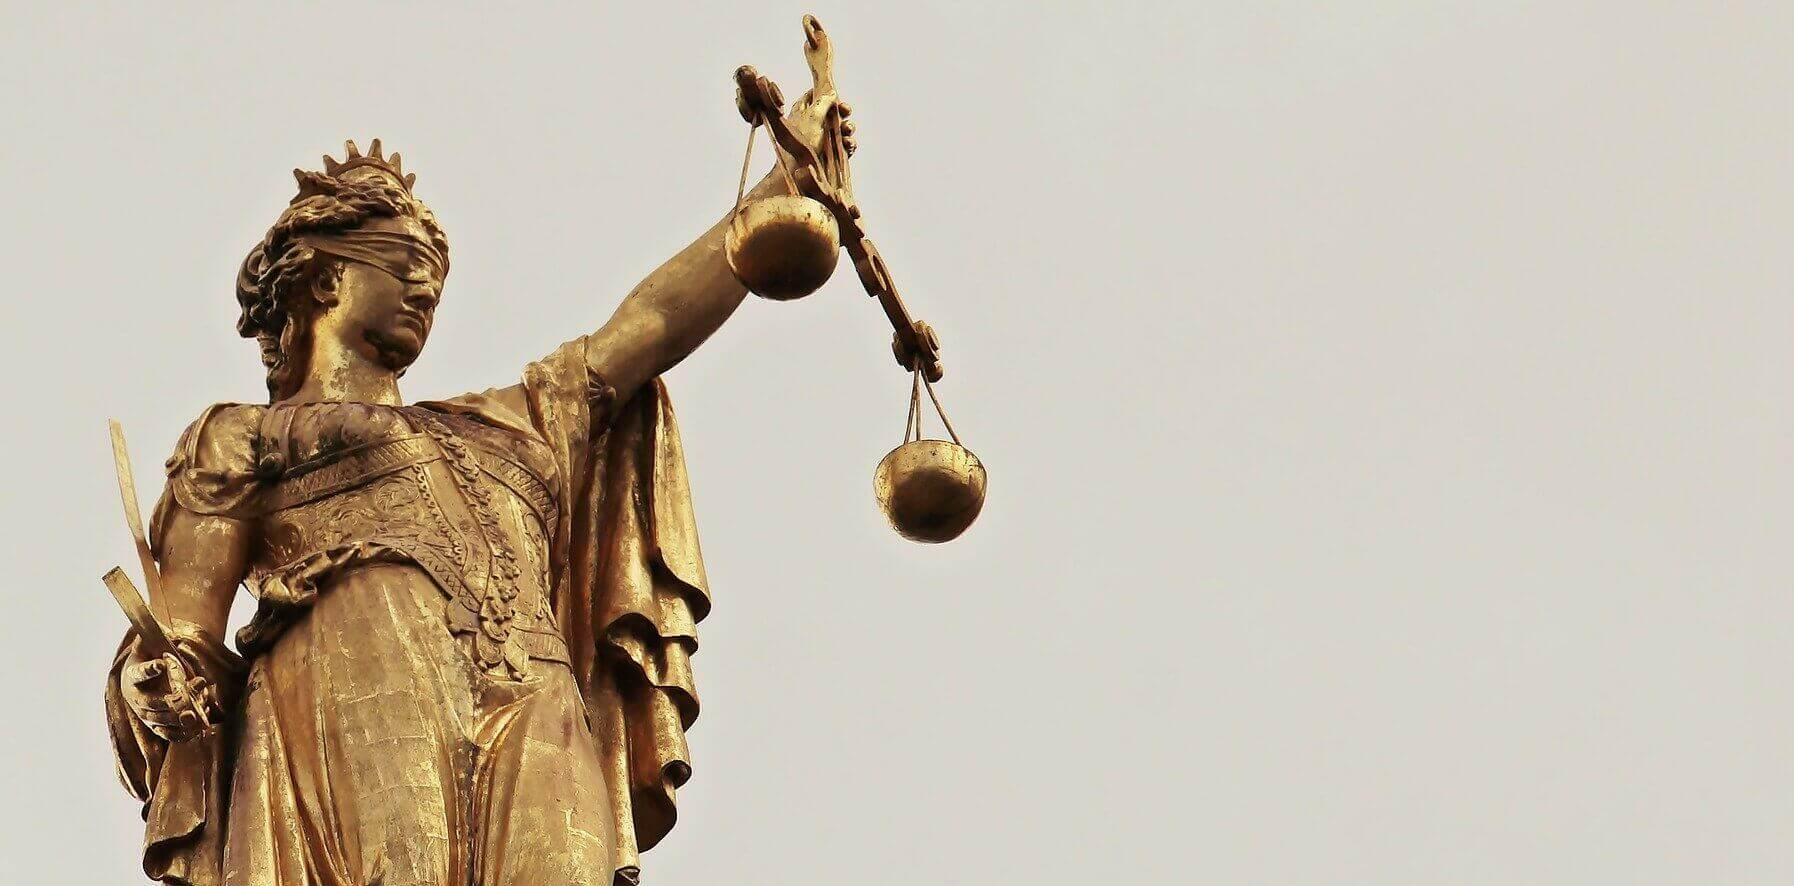 A statue of lady justice holding the scales of justice